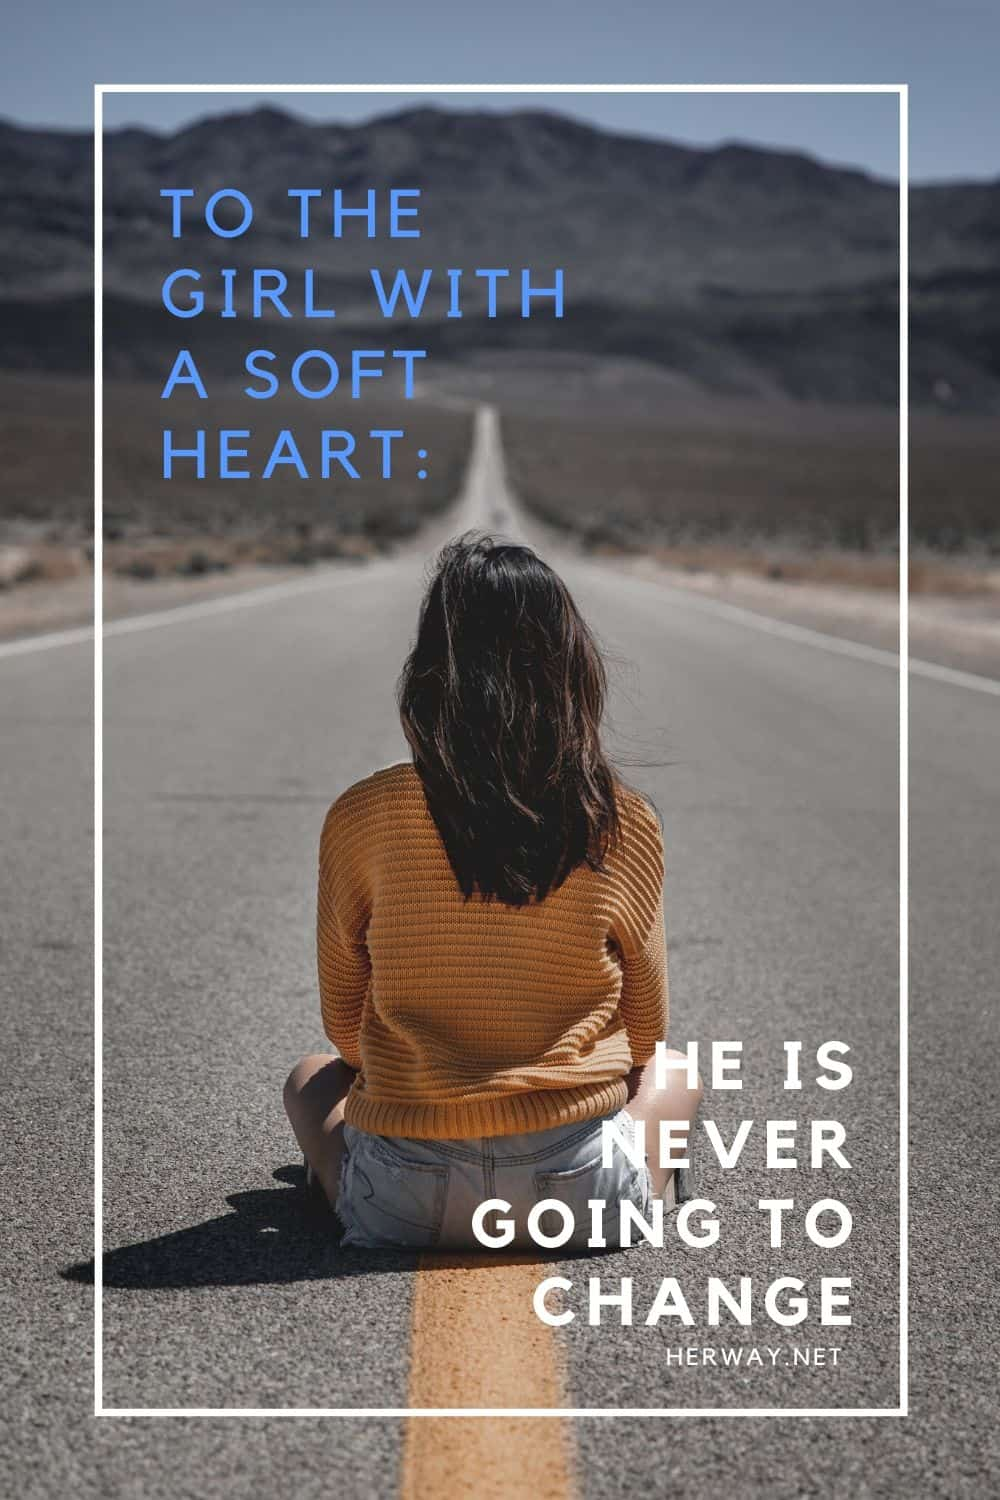 TO THE GIRL WITH A SOFT HEART: HE IS NEVER GOING TO CHANGE